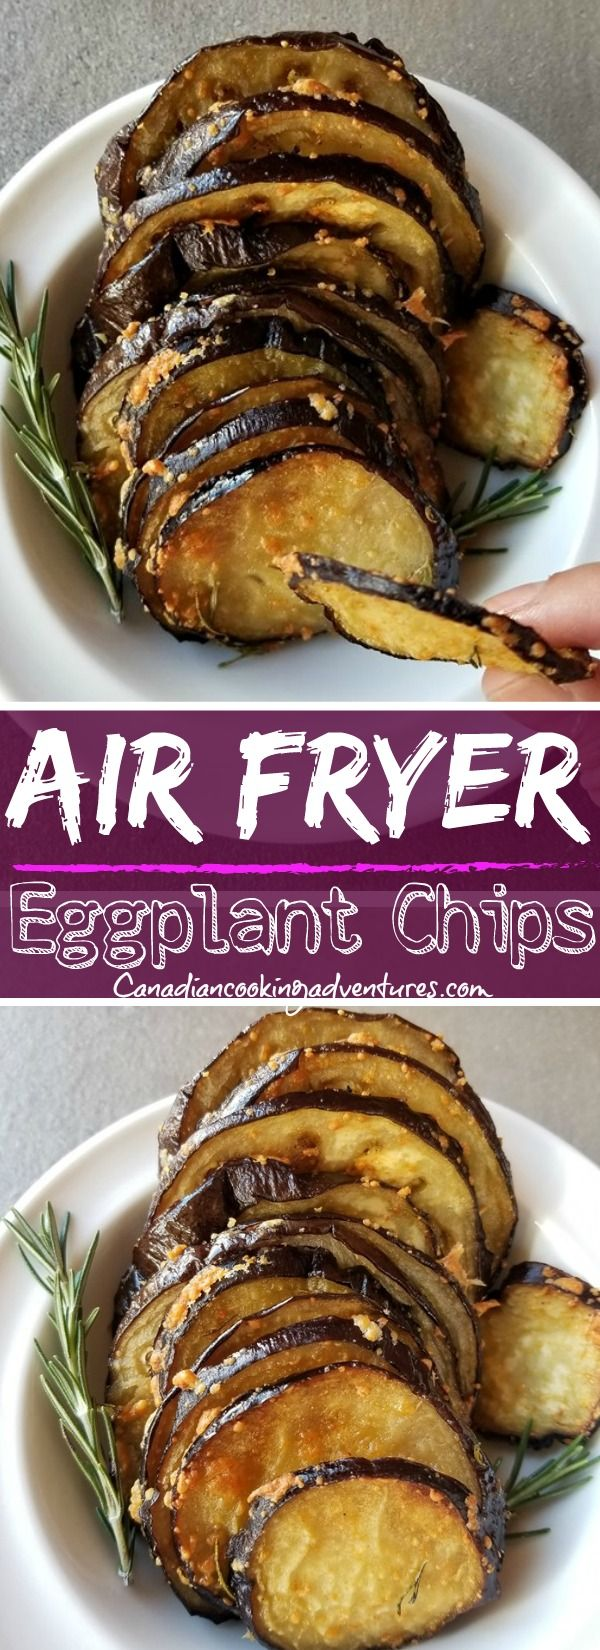 Air Fryer Eggplant Chips